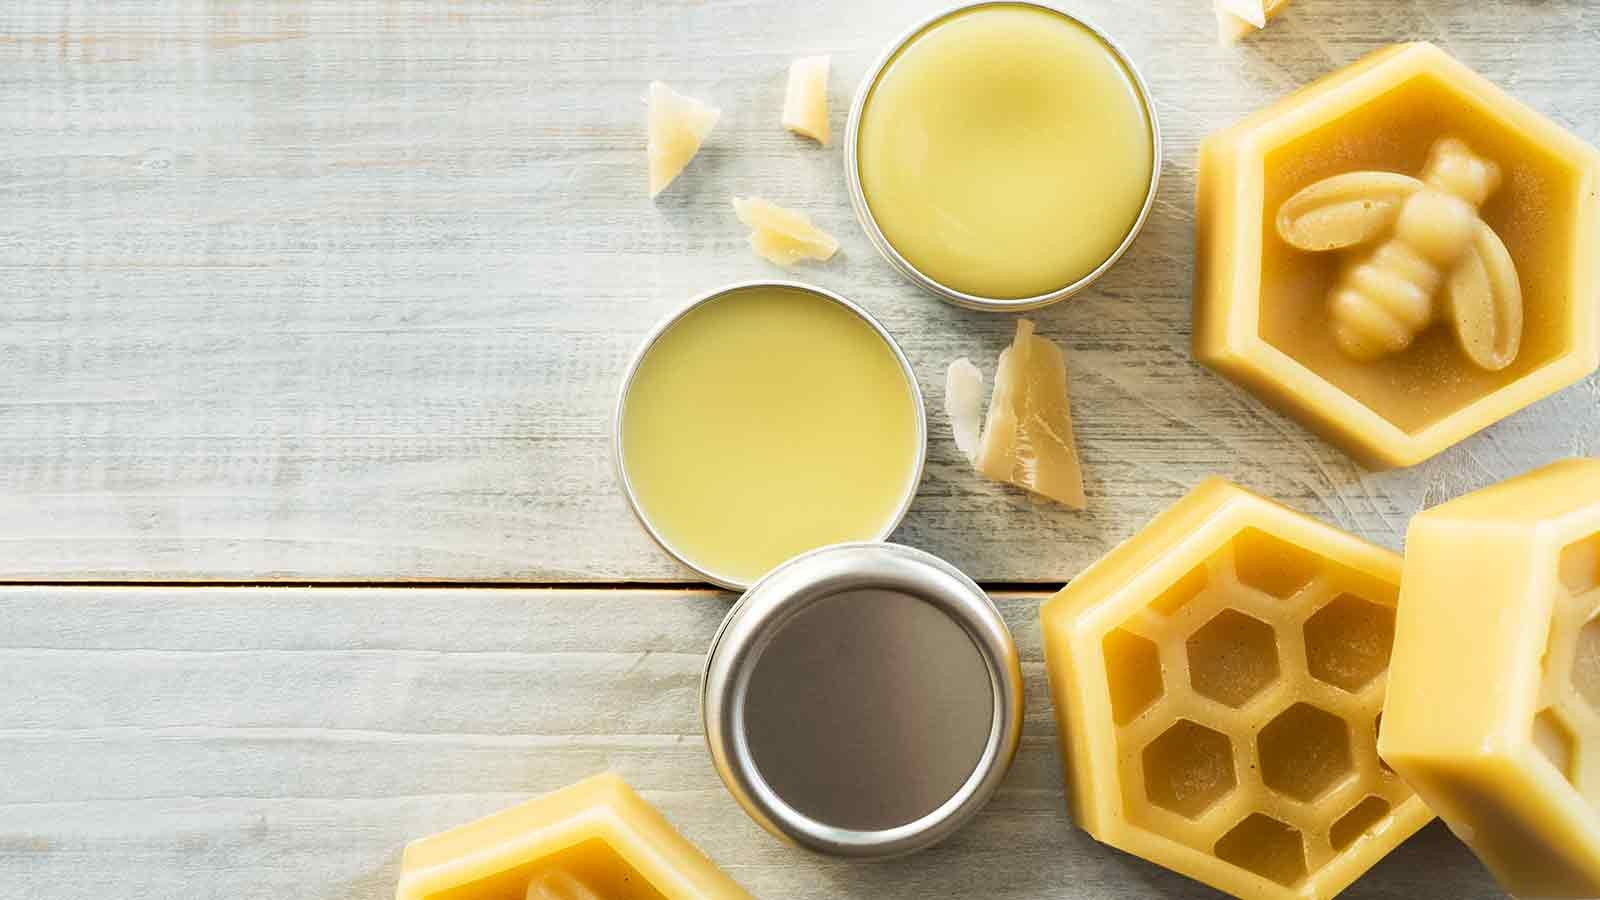 tin of bees wax lip balm surrounded by chunks of bees wax